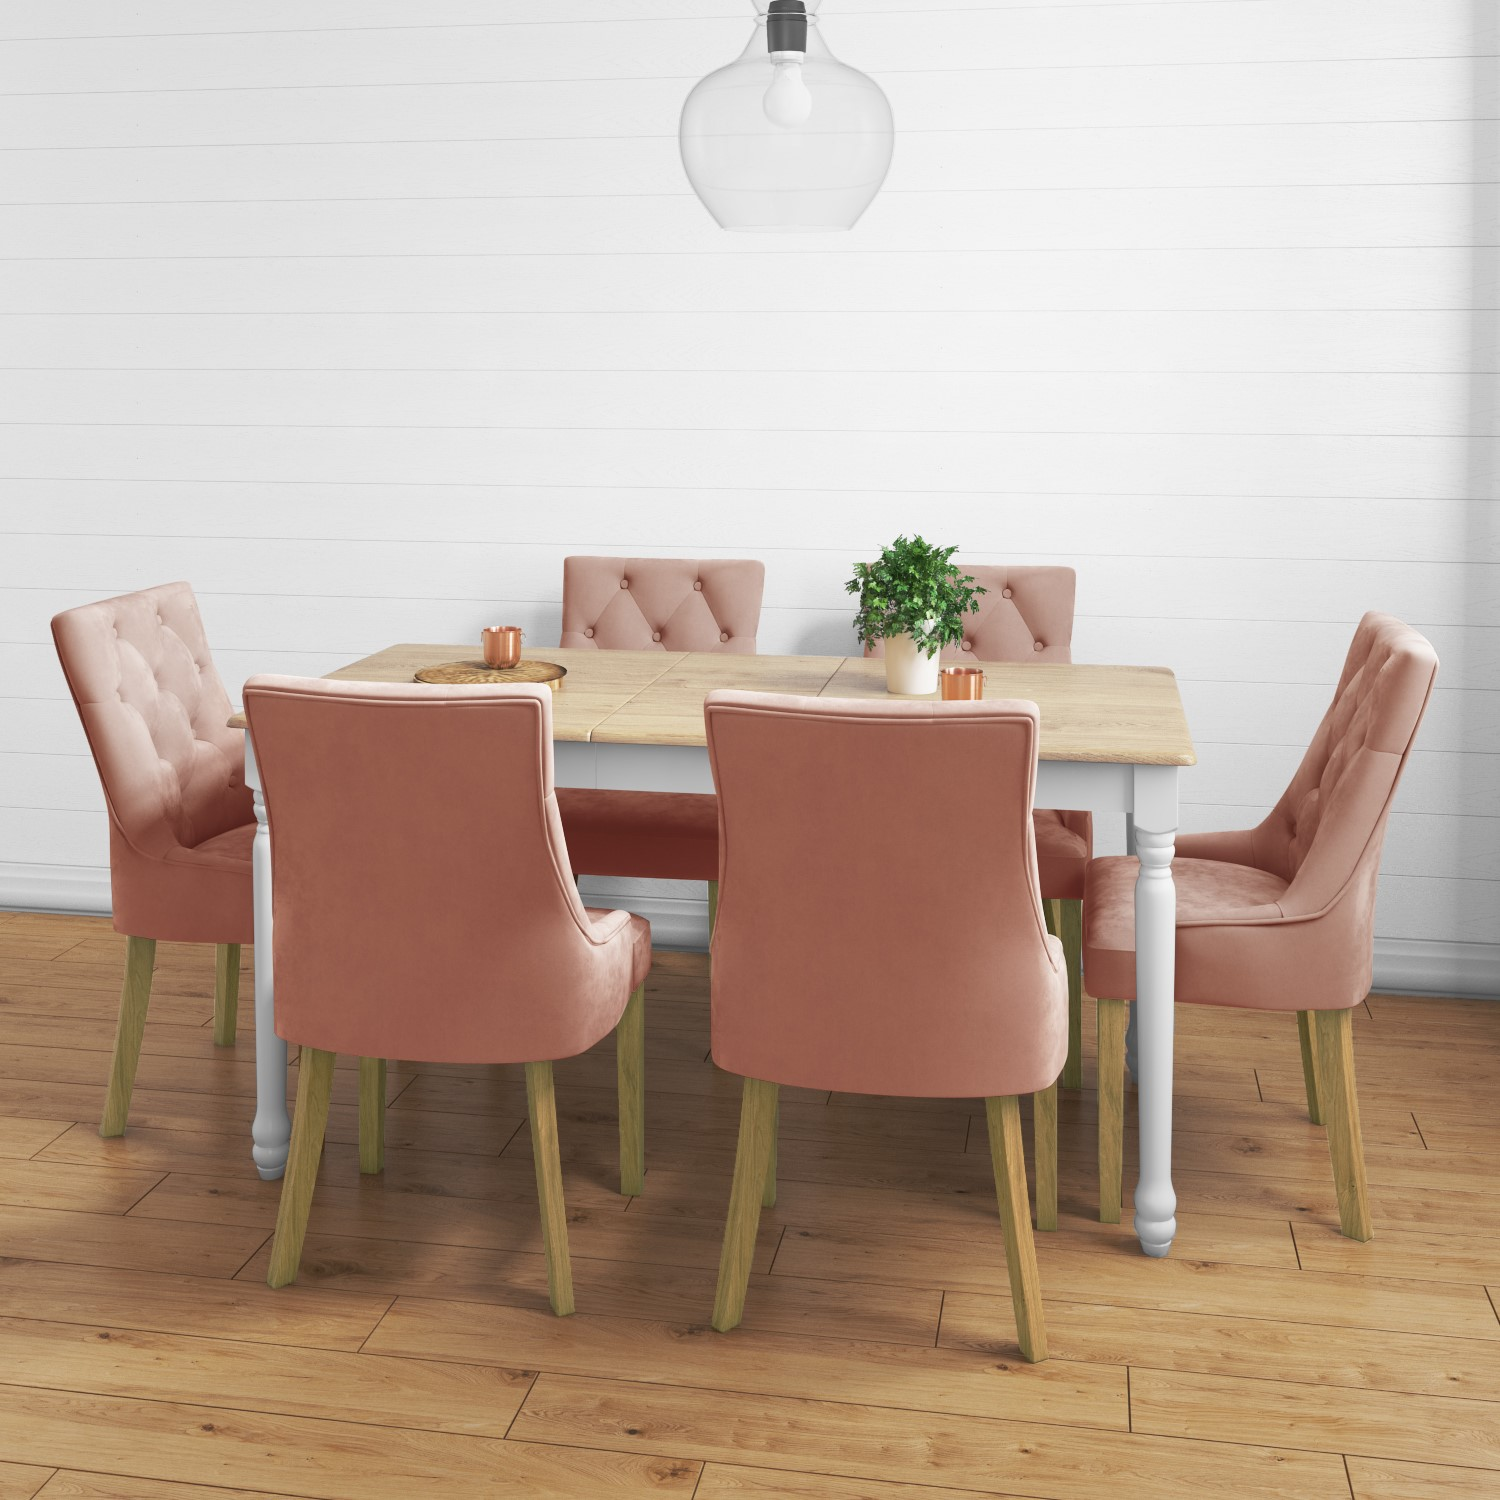 Picture of: Large Extendable Dining Table In Wood White With 6 Velvet Chairs In Pink Rhode Island Kaylee Furniture123